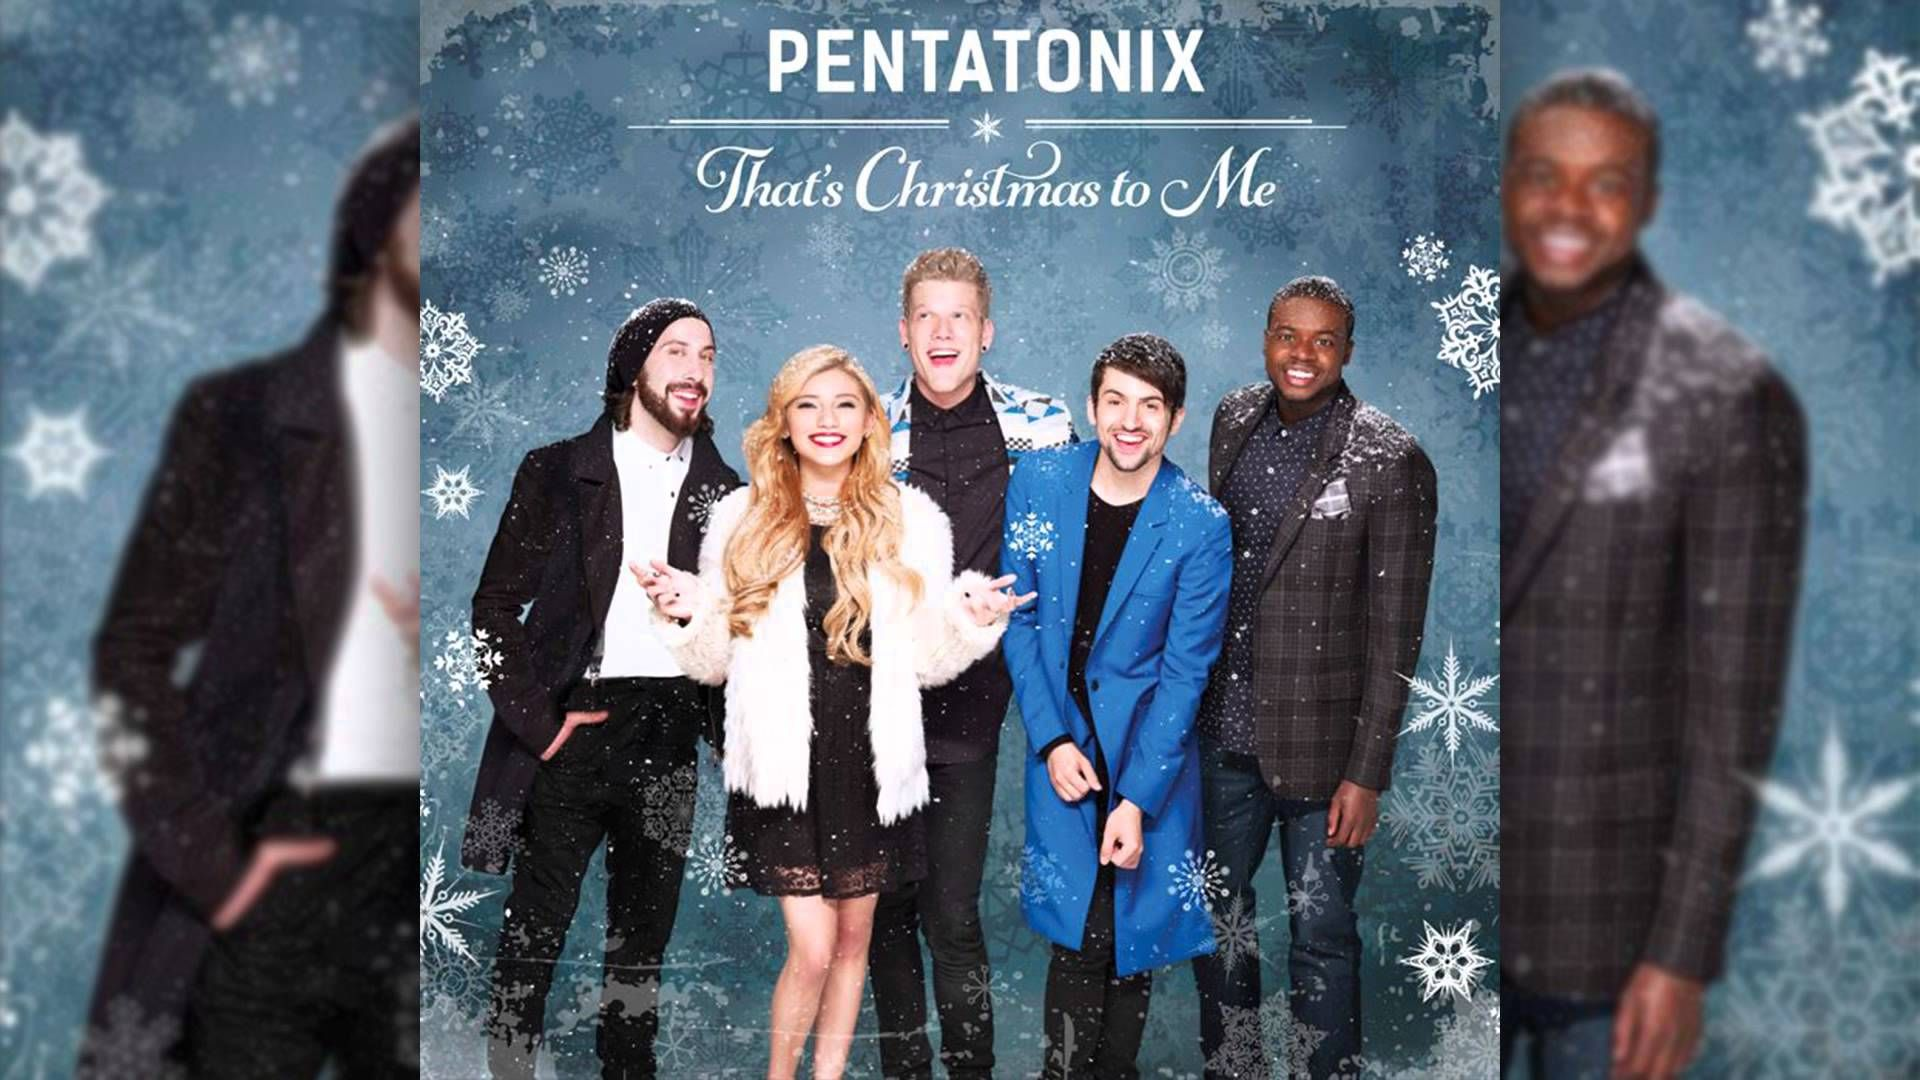 thats christmas to me dont forget the christmas music thats christmas to me by pentatonix is one of the best selling christmas albums - Best Selling Christmas Songs